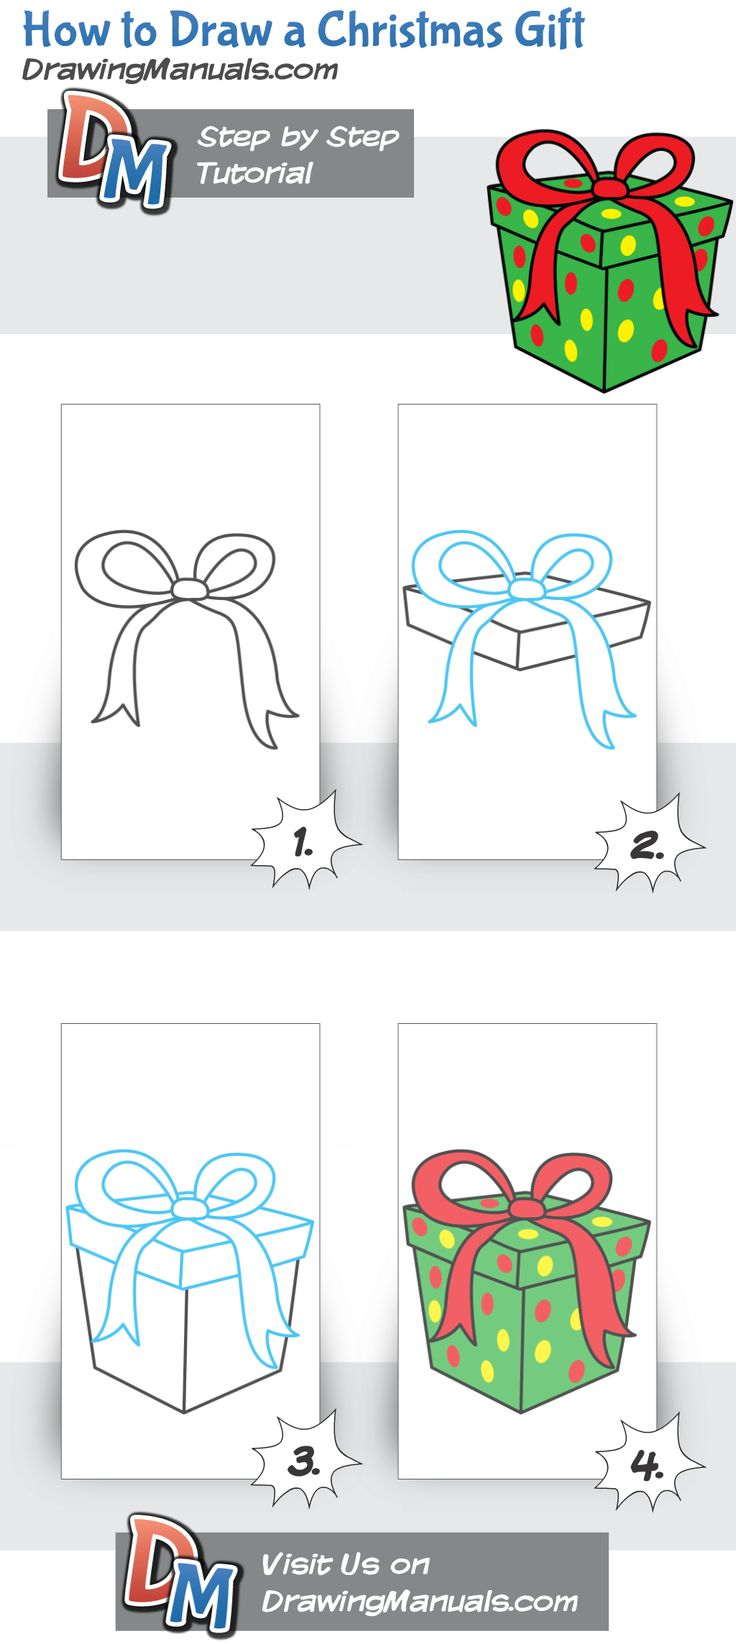 How to Draw a Christmas Gift, Present